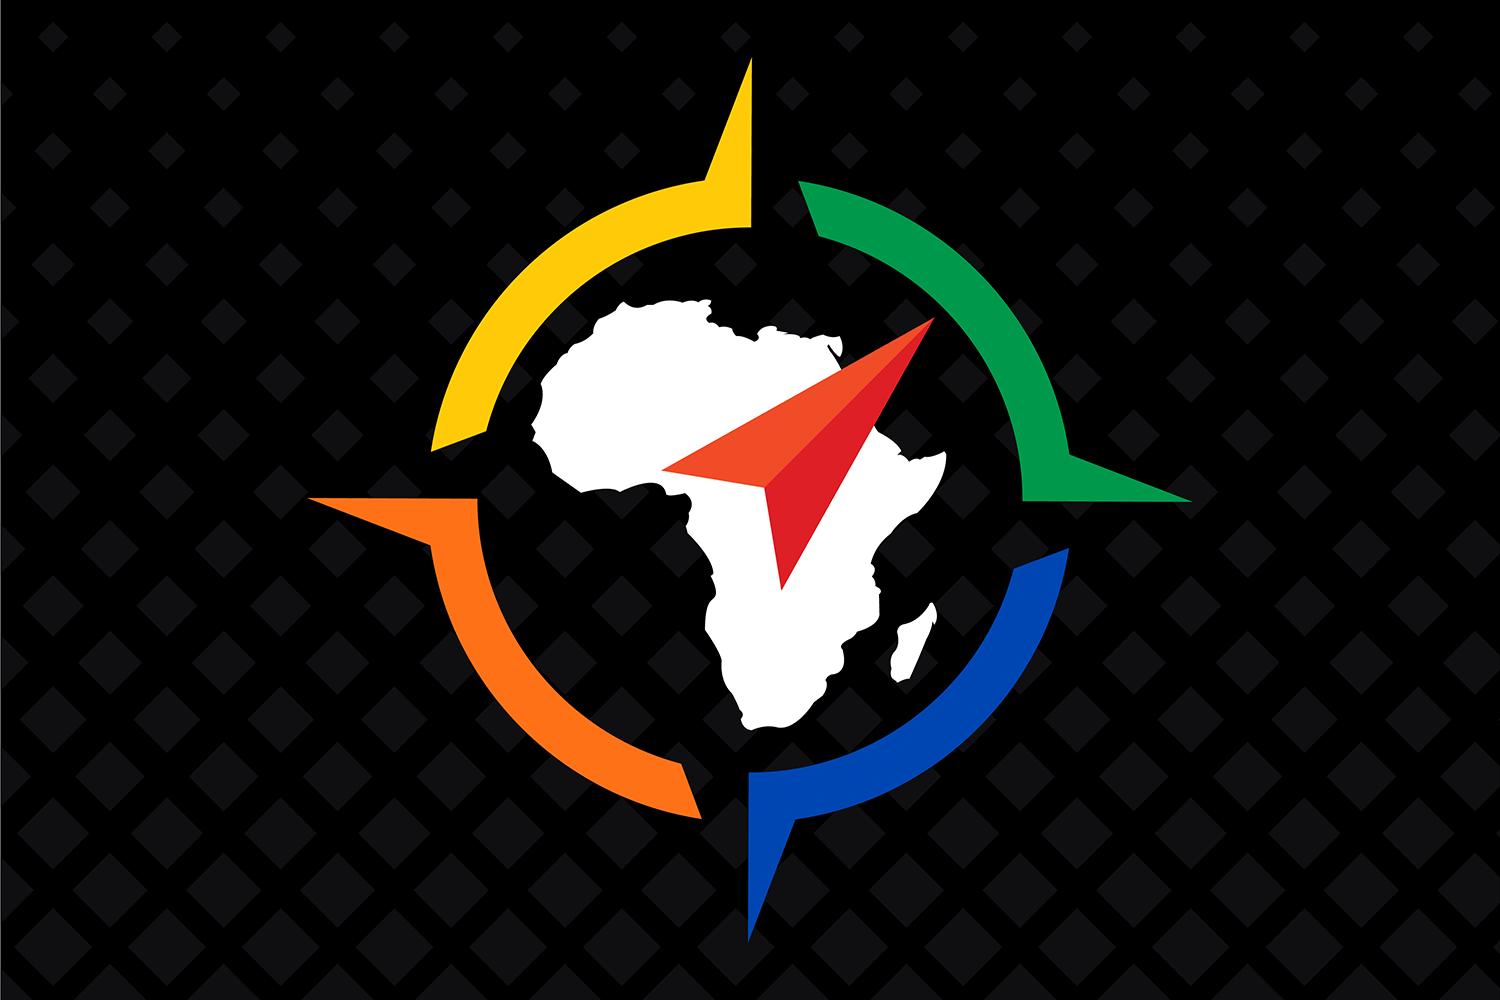 FP-BSA-Africa-Path-Security-Peace-1500x1000-homepage-blank